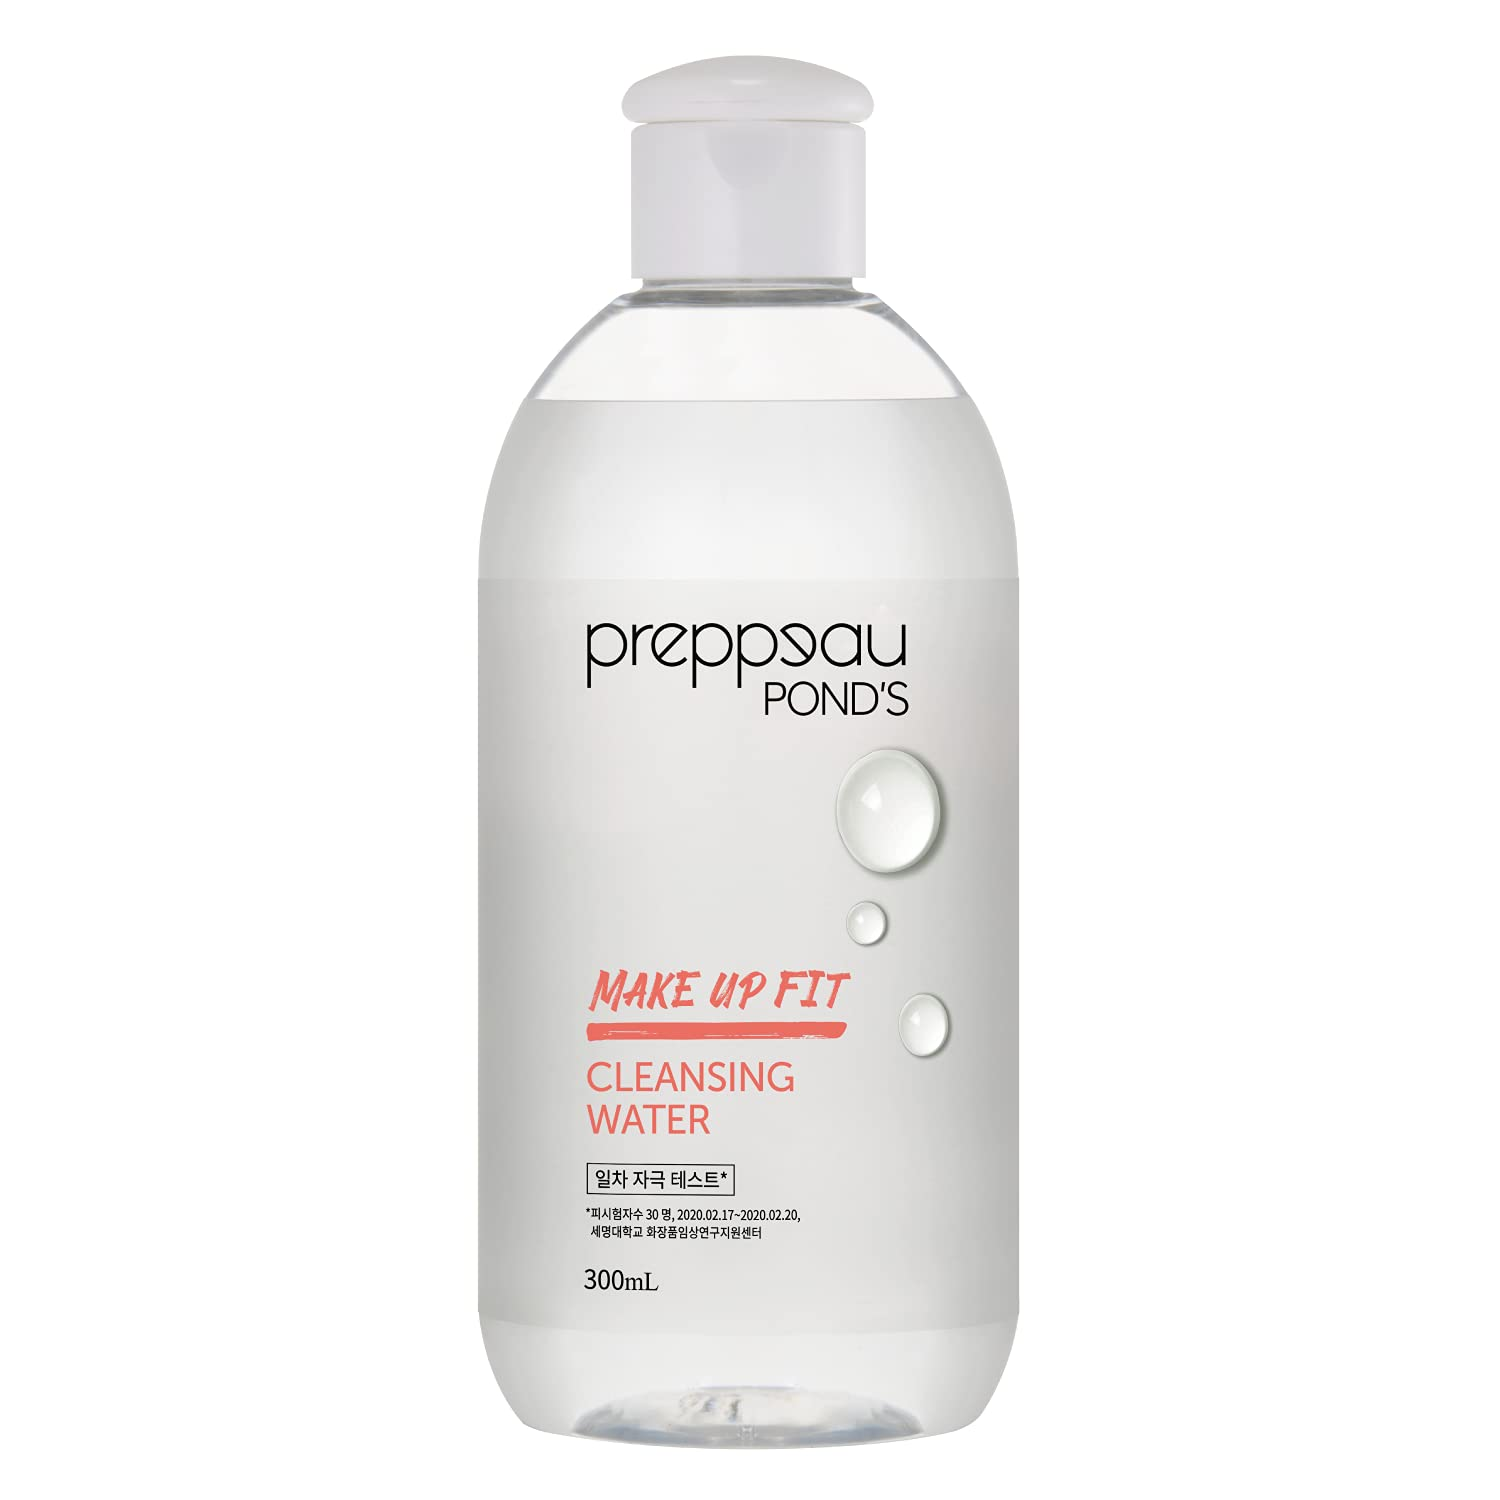 Pond's Phoenix Mall Preppeau Cleansing Water No Makeup Remove Rinse Choice Oil and